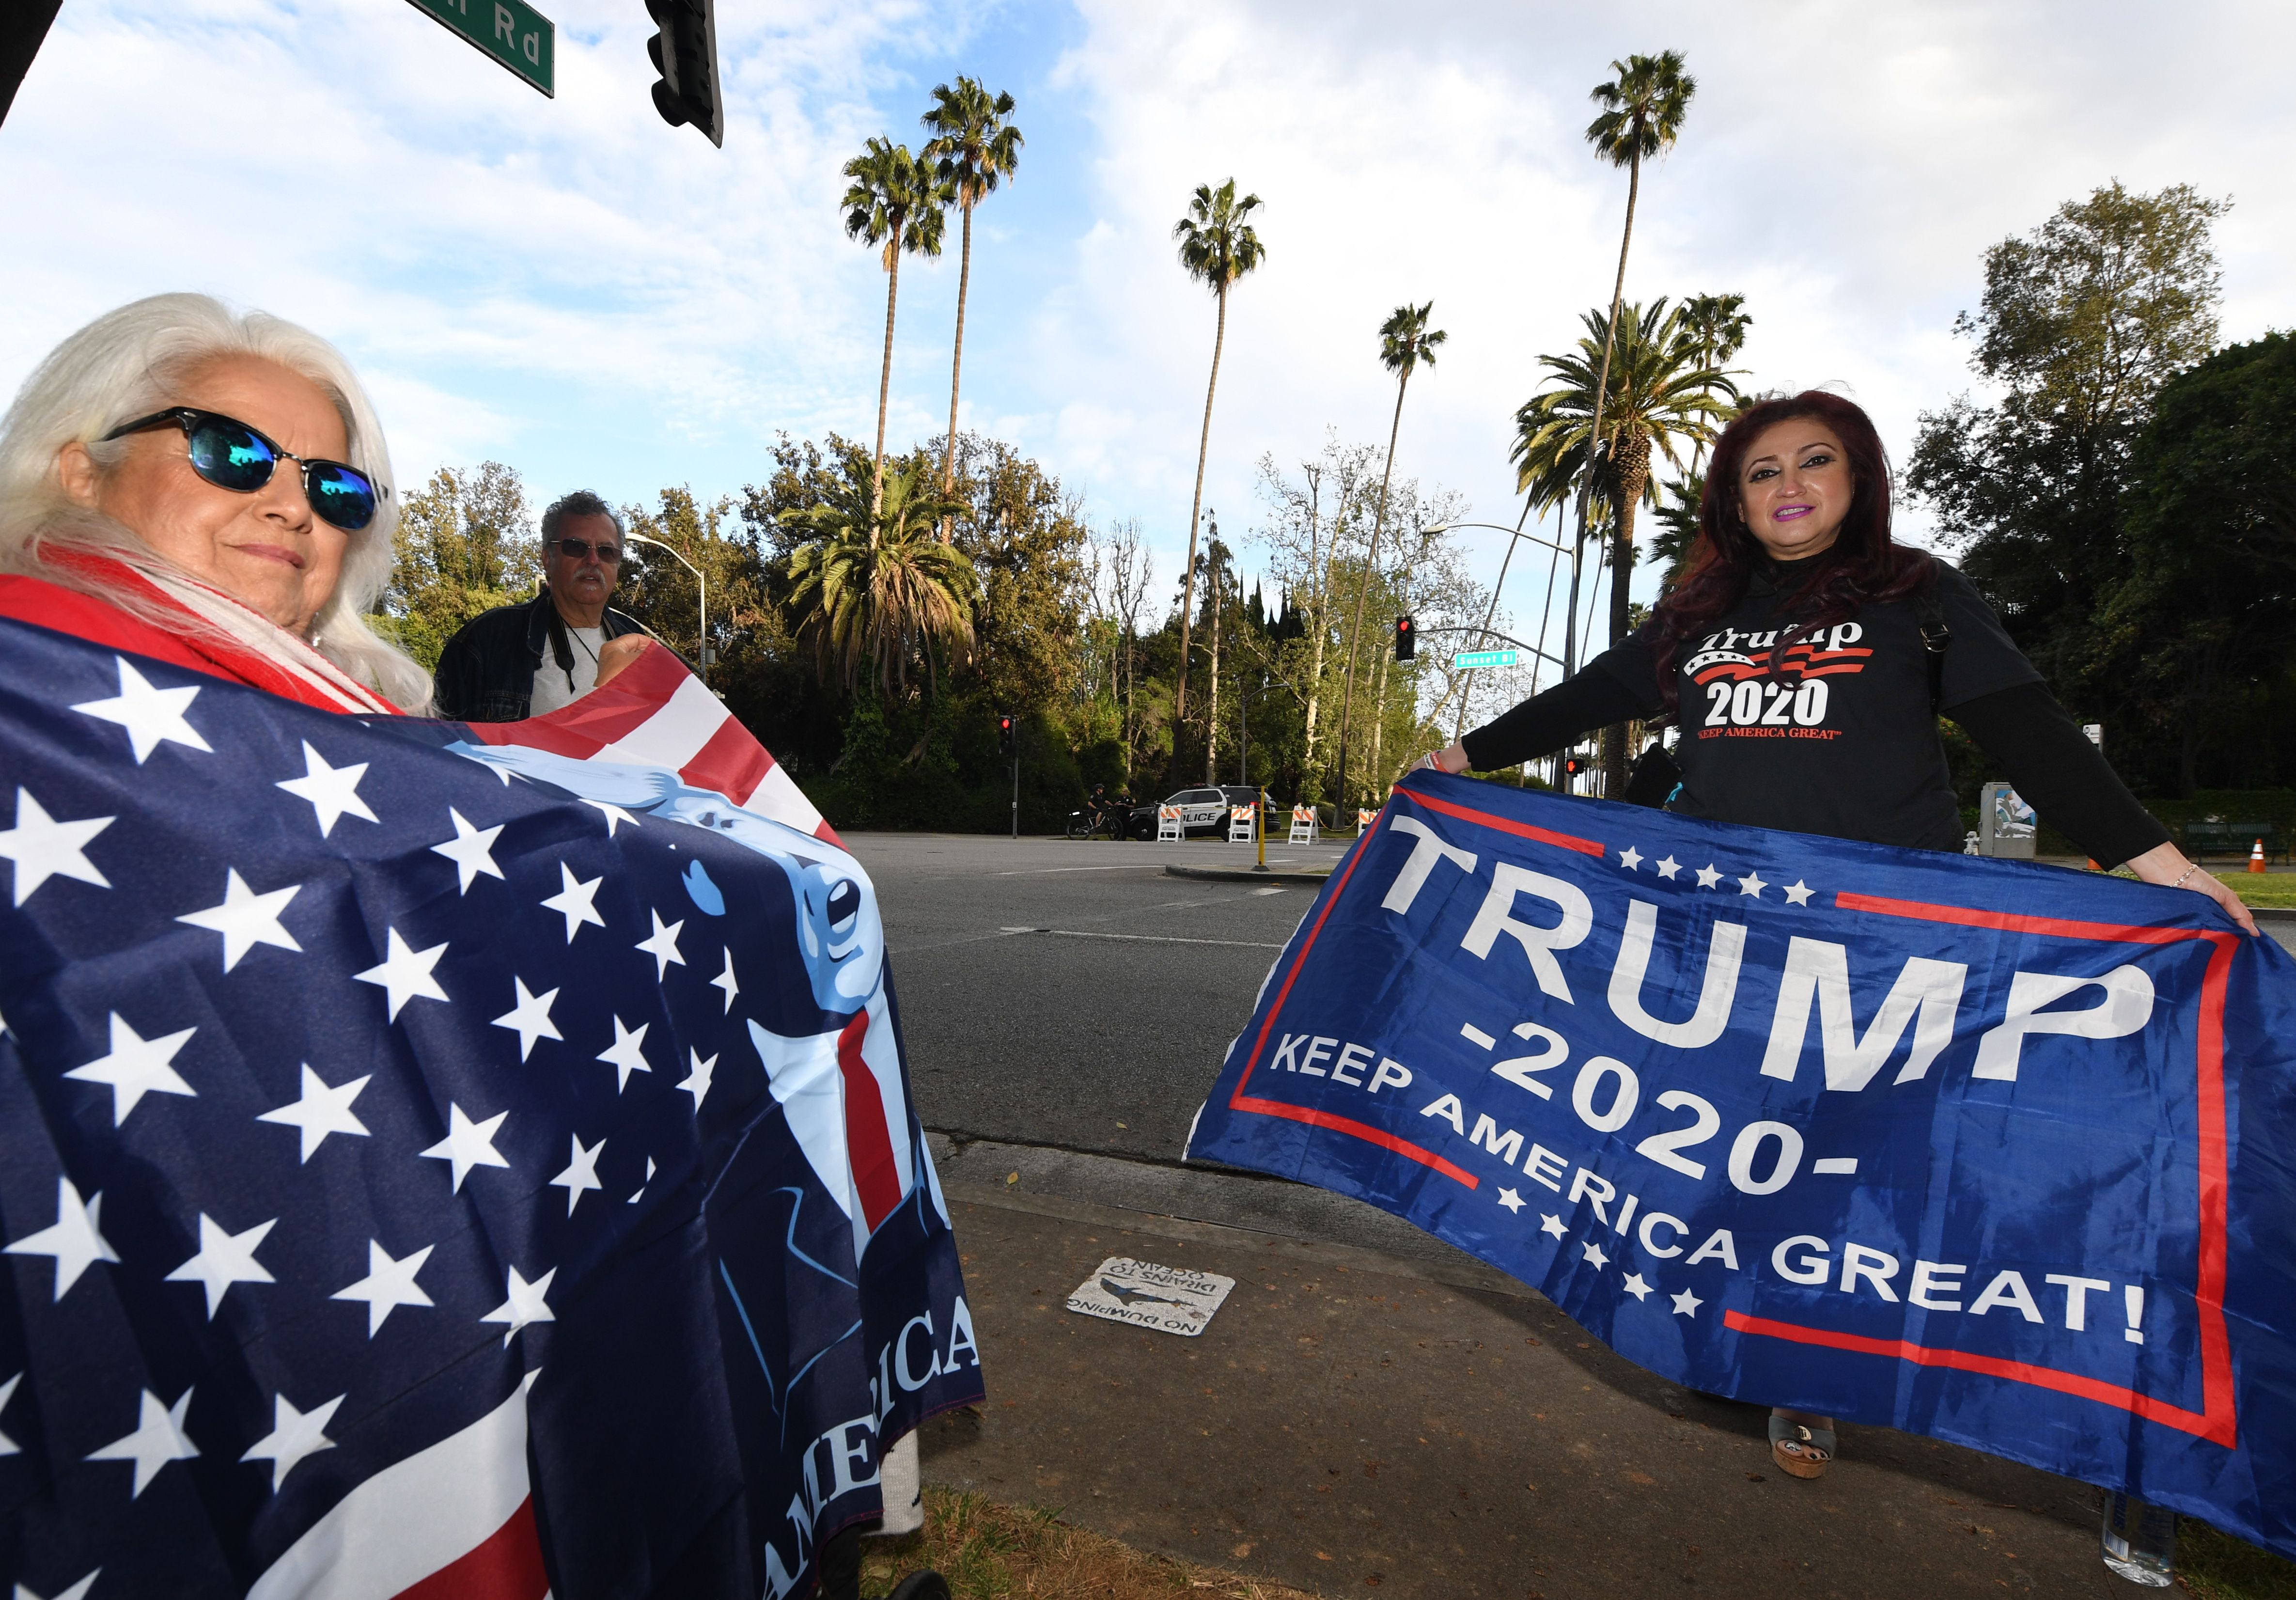 "Trump supporters pose for photos on Sunset Blvd as the US president attends a fundraiser nearby, in Beverly Hills, California, on April 5, 2019. - US President Donald Trump visited the Mexican border on April 5 to deliver a message to would-be illegal immigrants and asylum seekers: don't bother coming. ""The system is full and we can't take you anymore... Our country is full,"" he said at a meeting with border patrol officers and other officials in Calexico, California. ""So turn around, that's the way it is."" (Photo by Mark RALSTON / AFP) (Photo credit should read MARK RALSTON/AFP/Getty Images)"